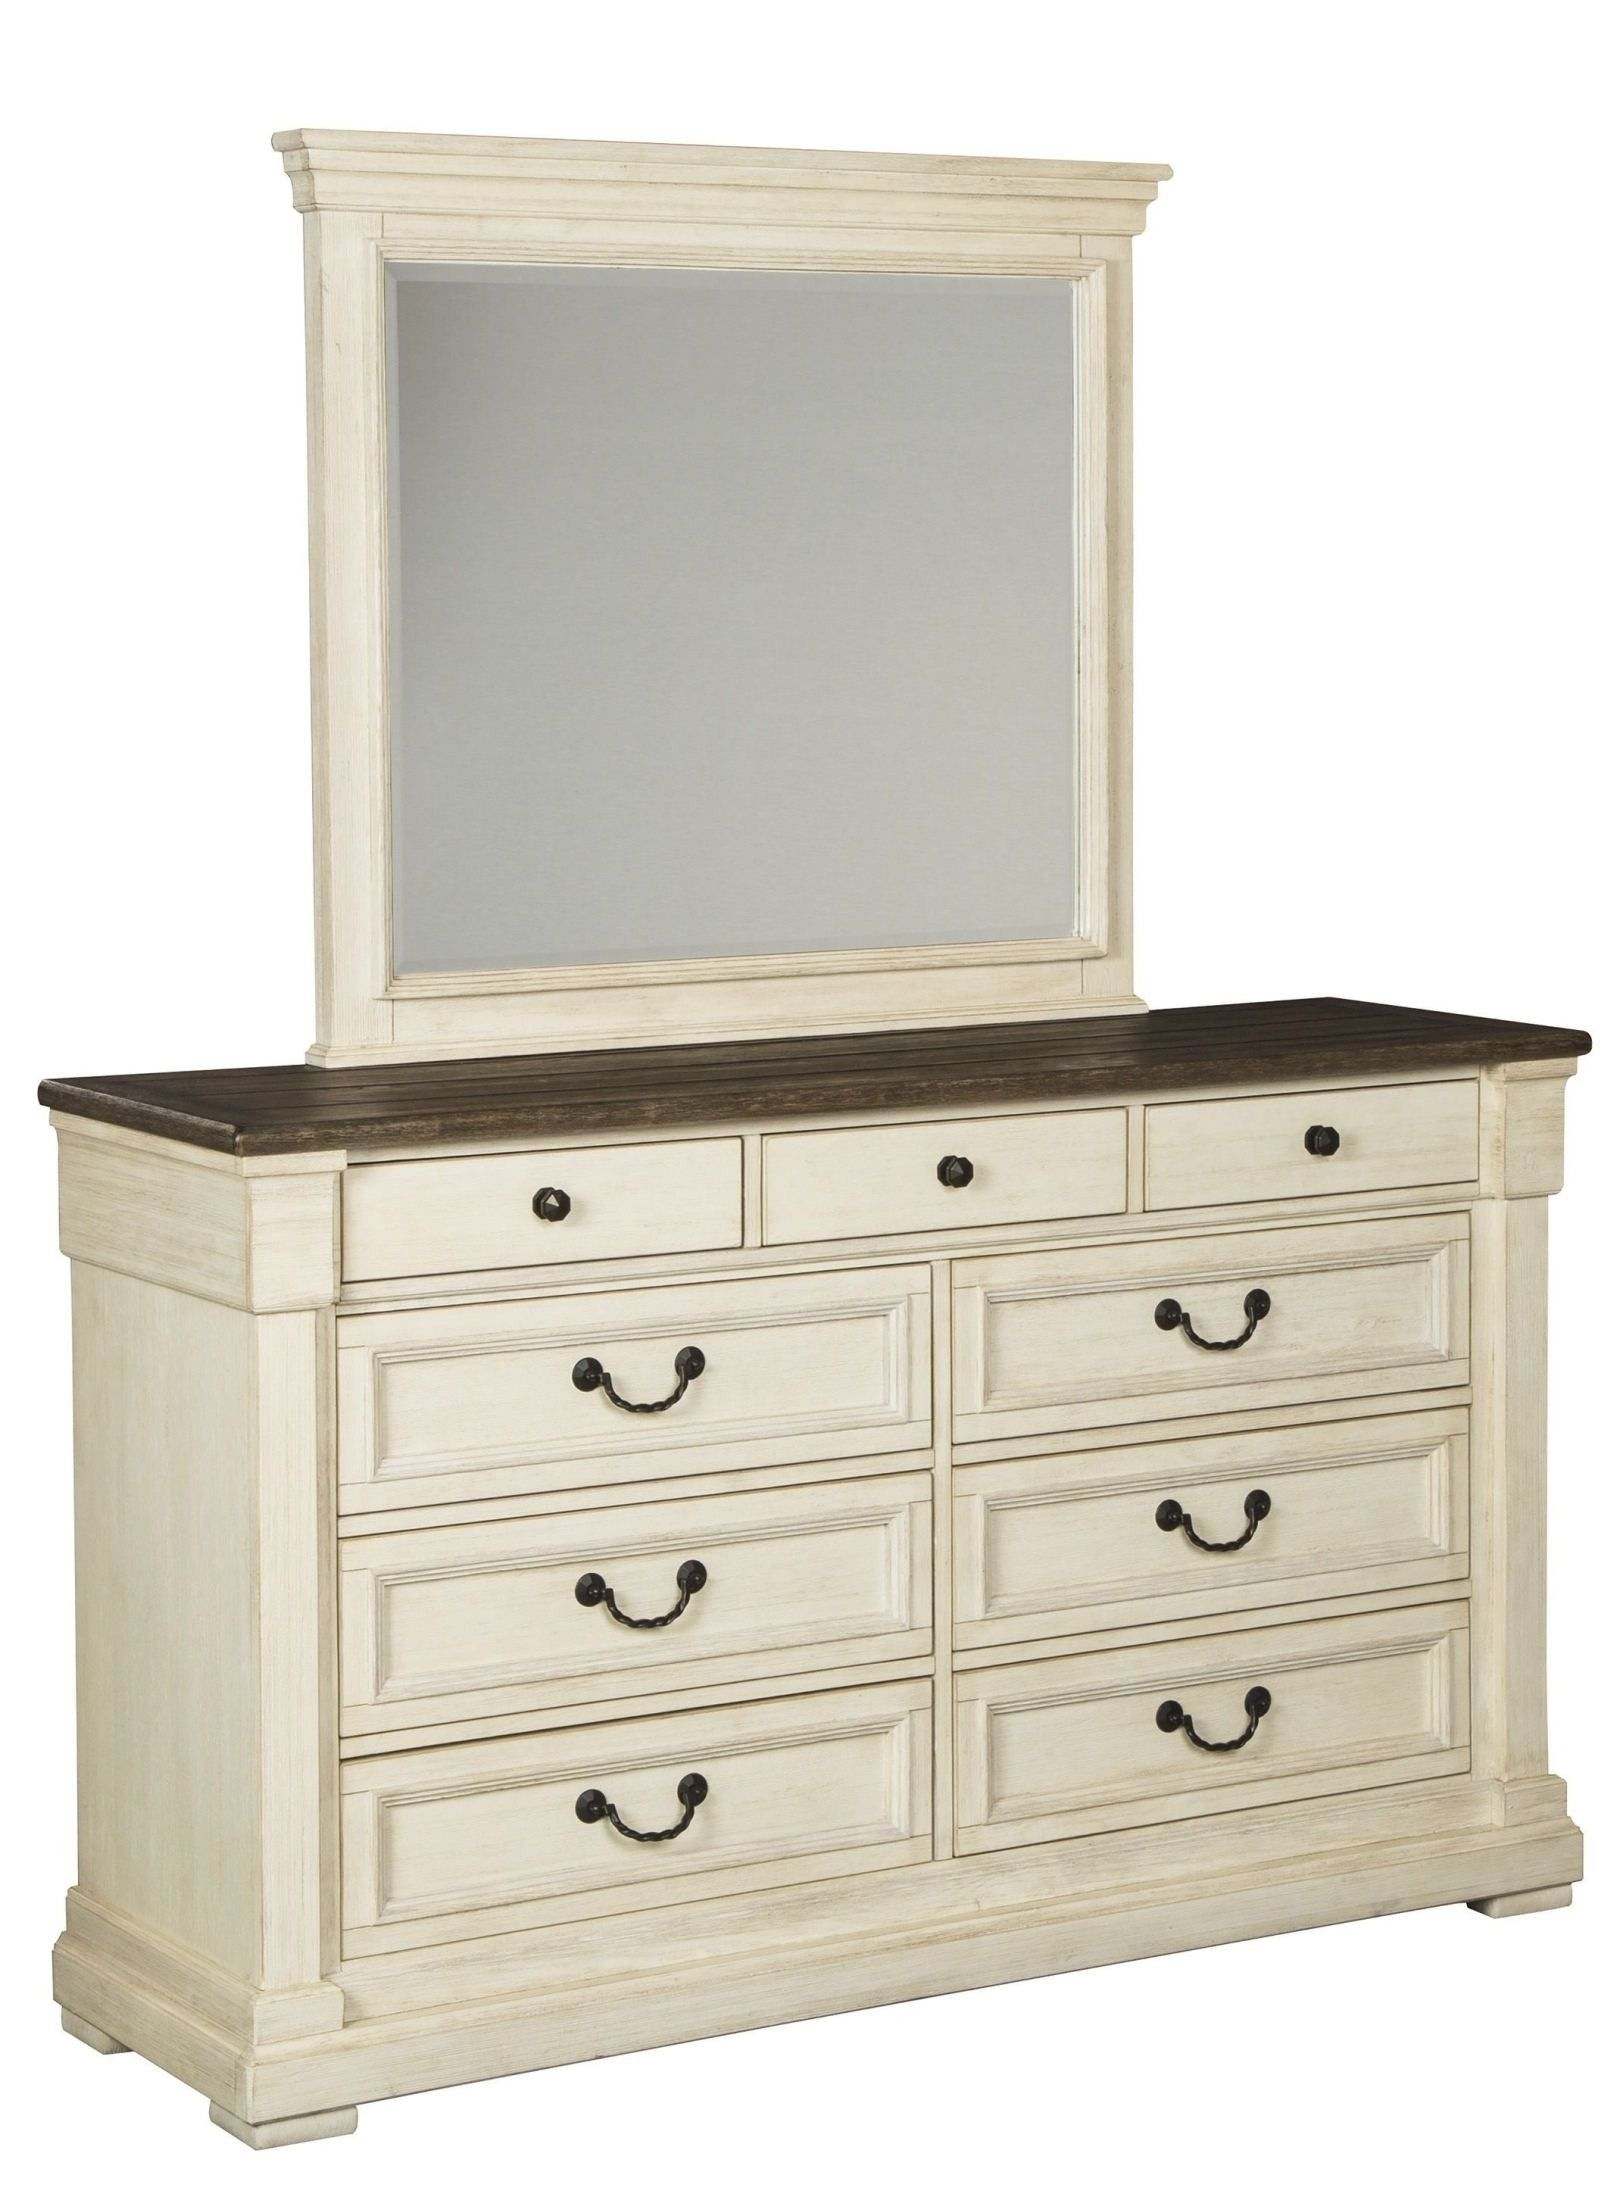 Best Bolanburg Two Tone Dresser White Paneling Repurposed 640 x 480